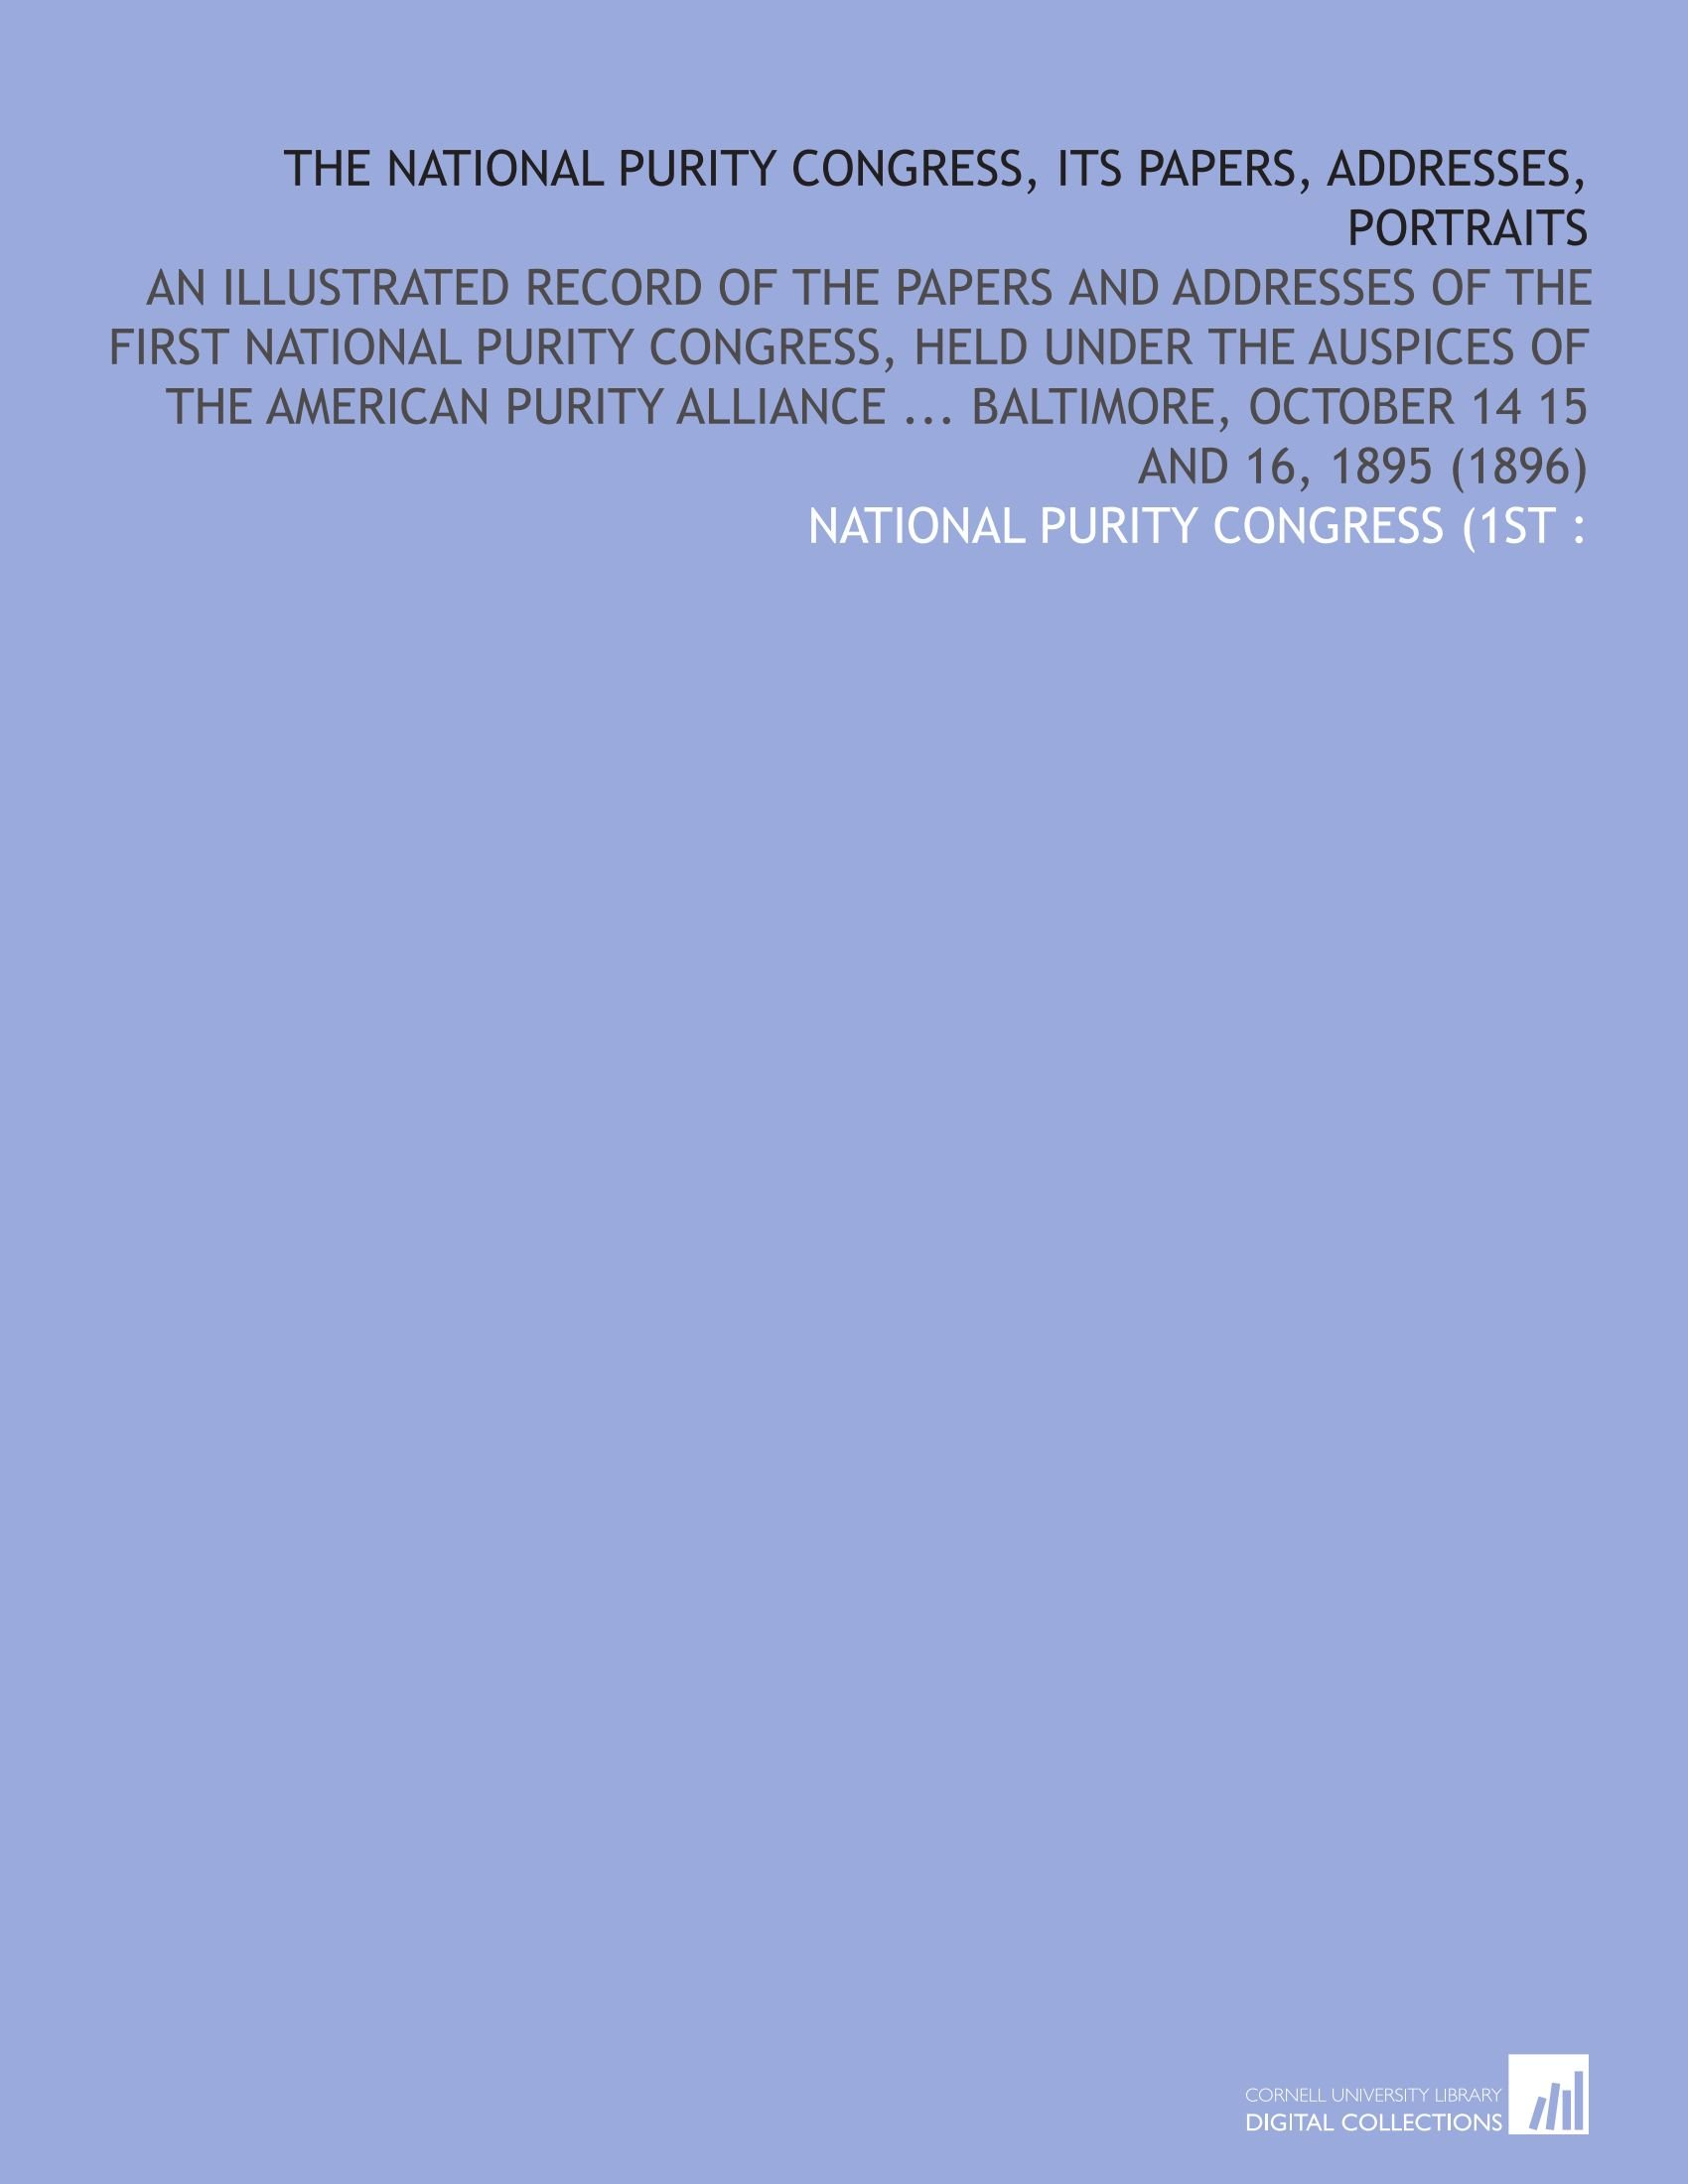 The National Purity Congress, Its Papers, Addresses, Portraits: An Illustrated Record of the Papers and Addresses of the First National Purity ... Baltimore, October 14 15 and 16, 1895 (1896) pdf